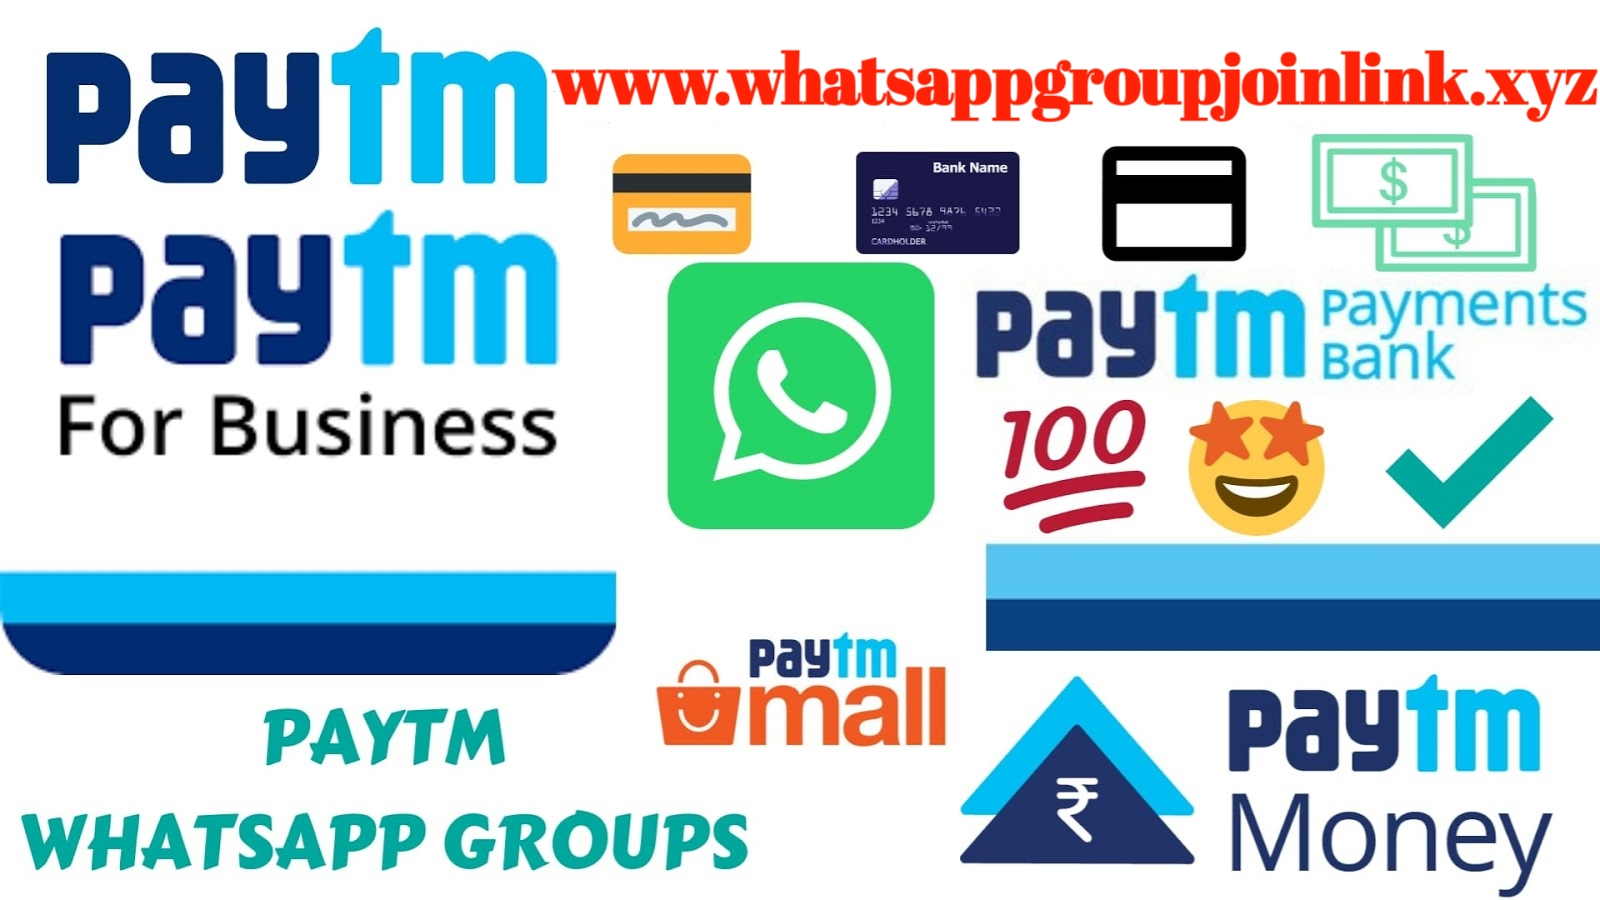 Paytm WhatsApp Group Joins Link | Whatsapp Group Links 2019